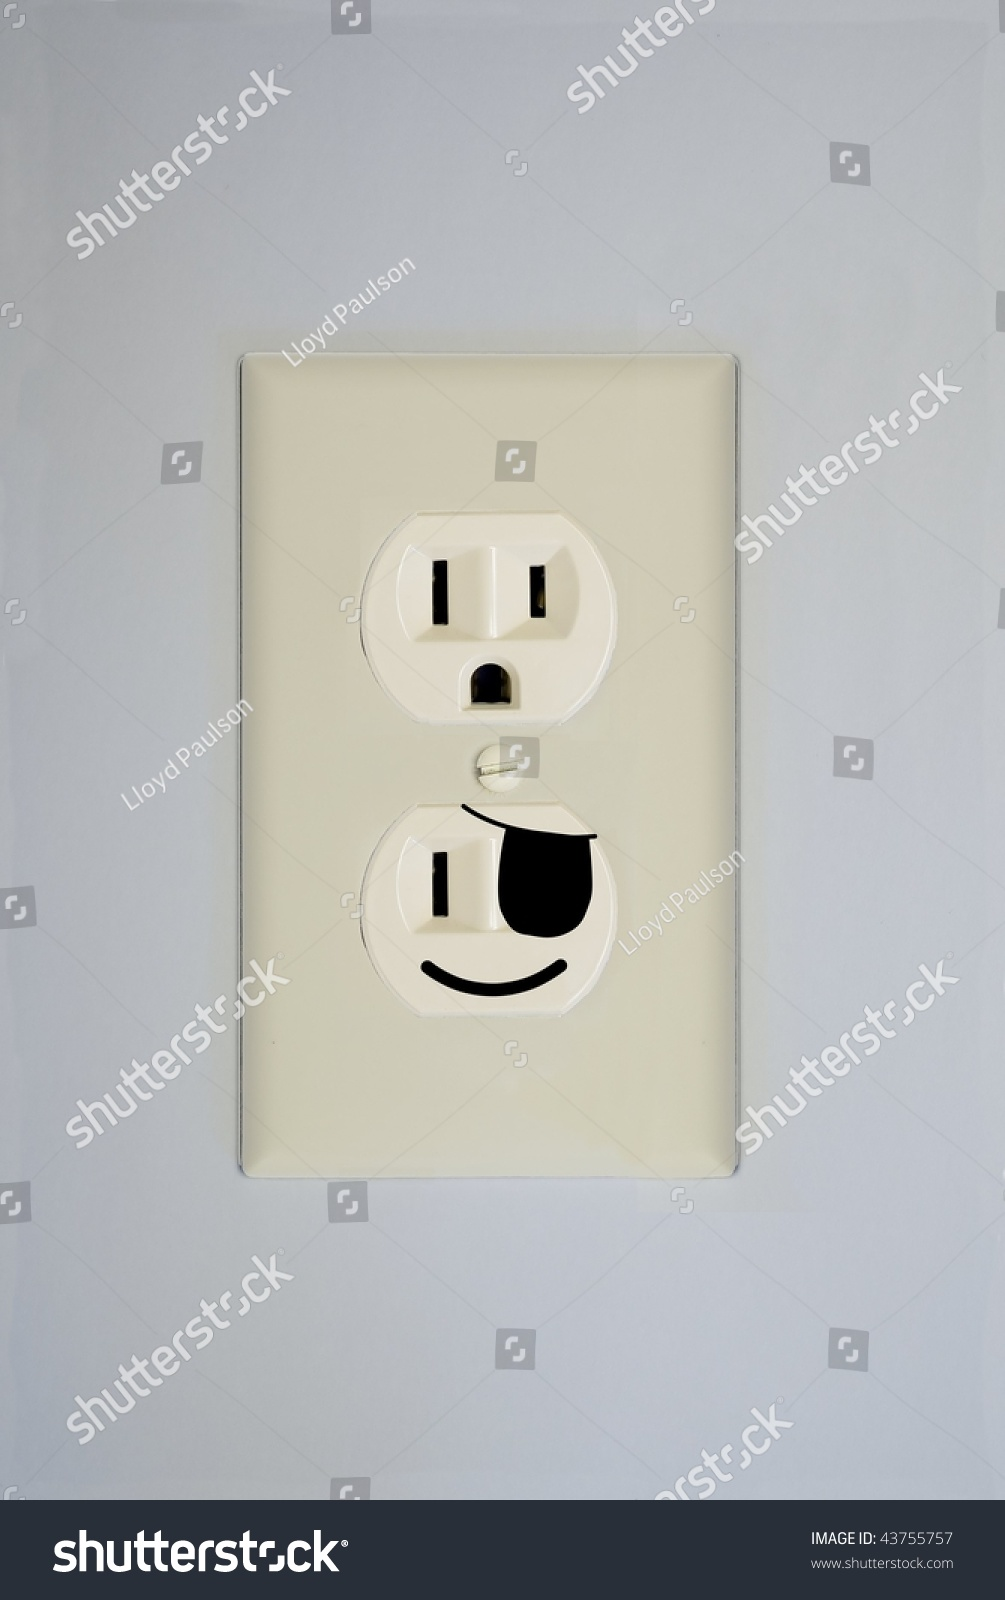 Standard Wall Electrical Outlet Contains Two Stock Photo (Royalty ...